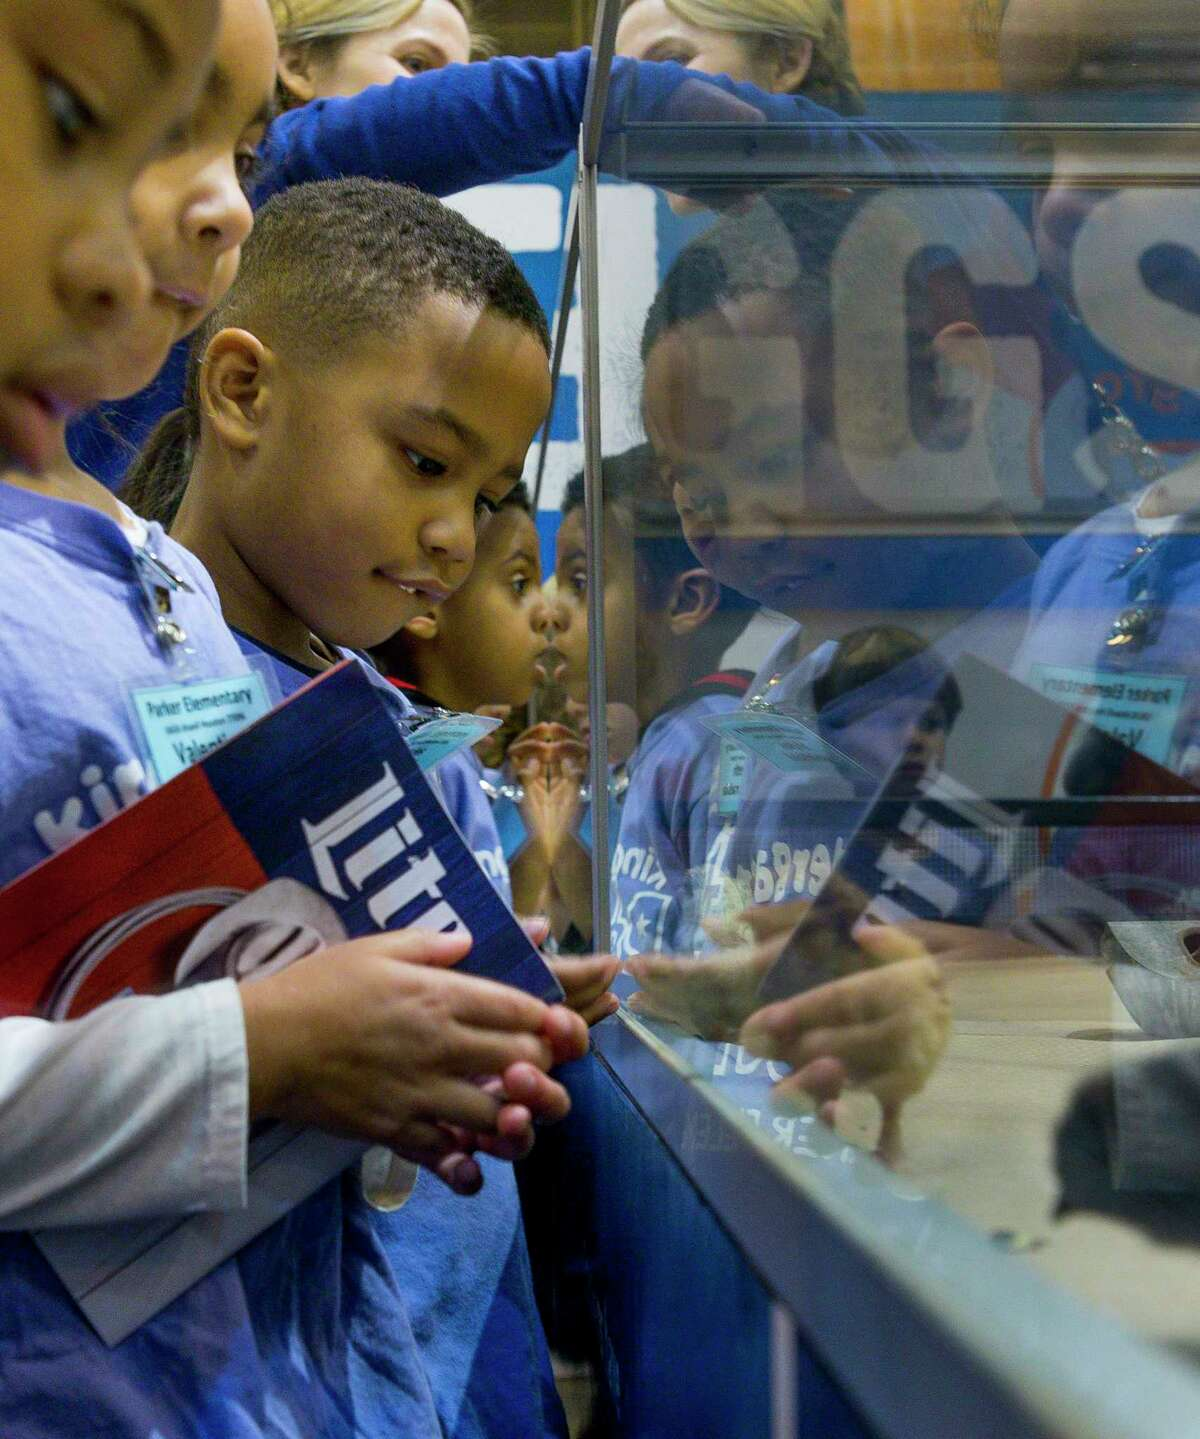 Kindergartners from Parker Elementary School look at newborn chicks at the Houston Livestock Show and Rodeo, Wednesday, Feb. 27, 2019 in Houston.